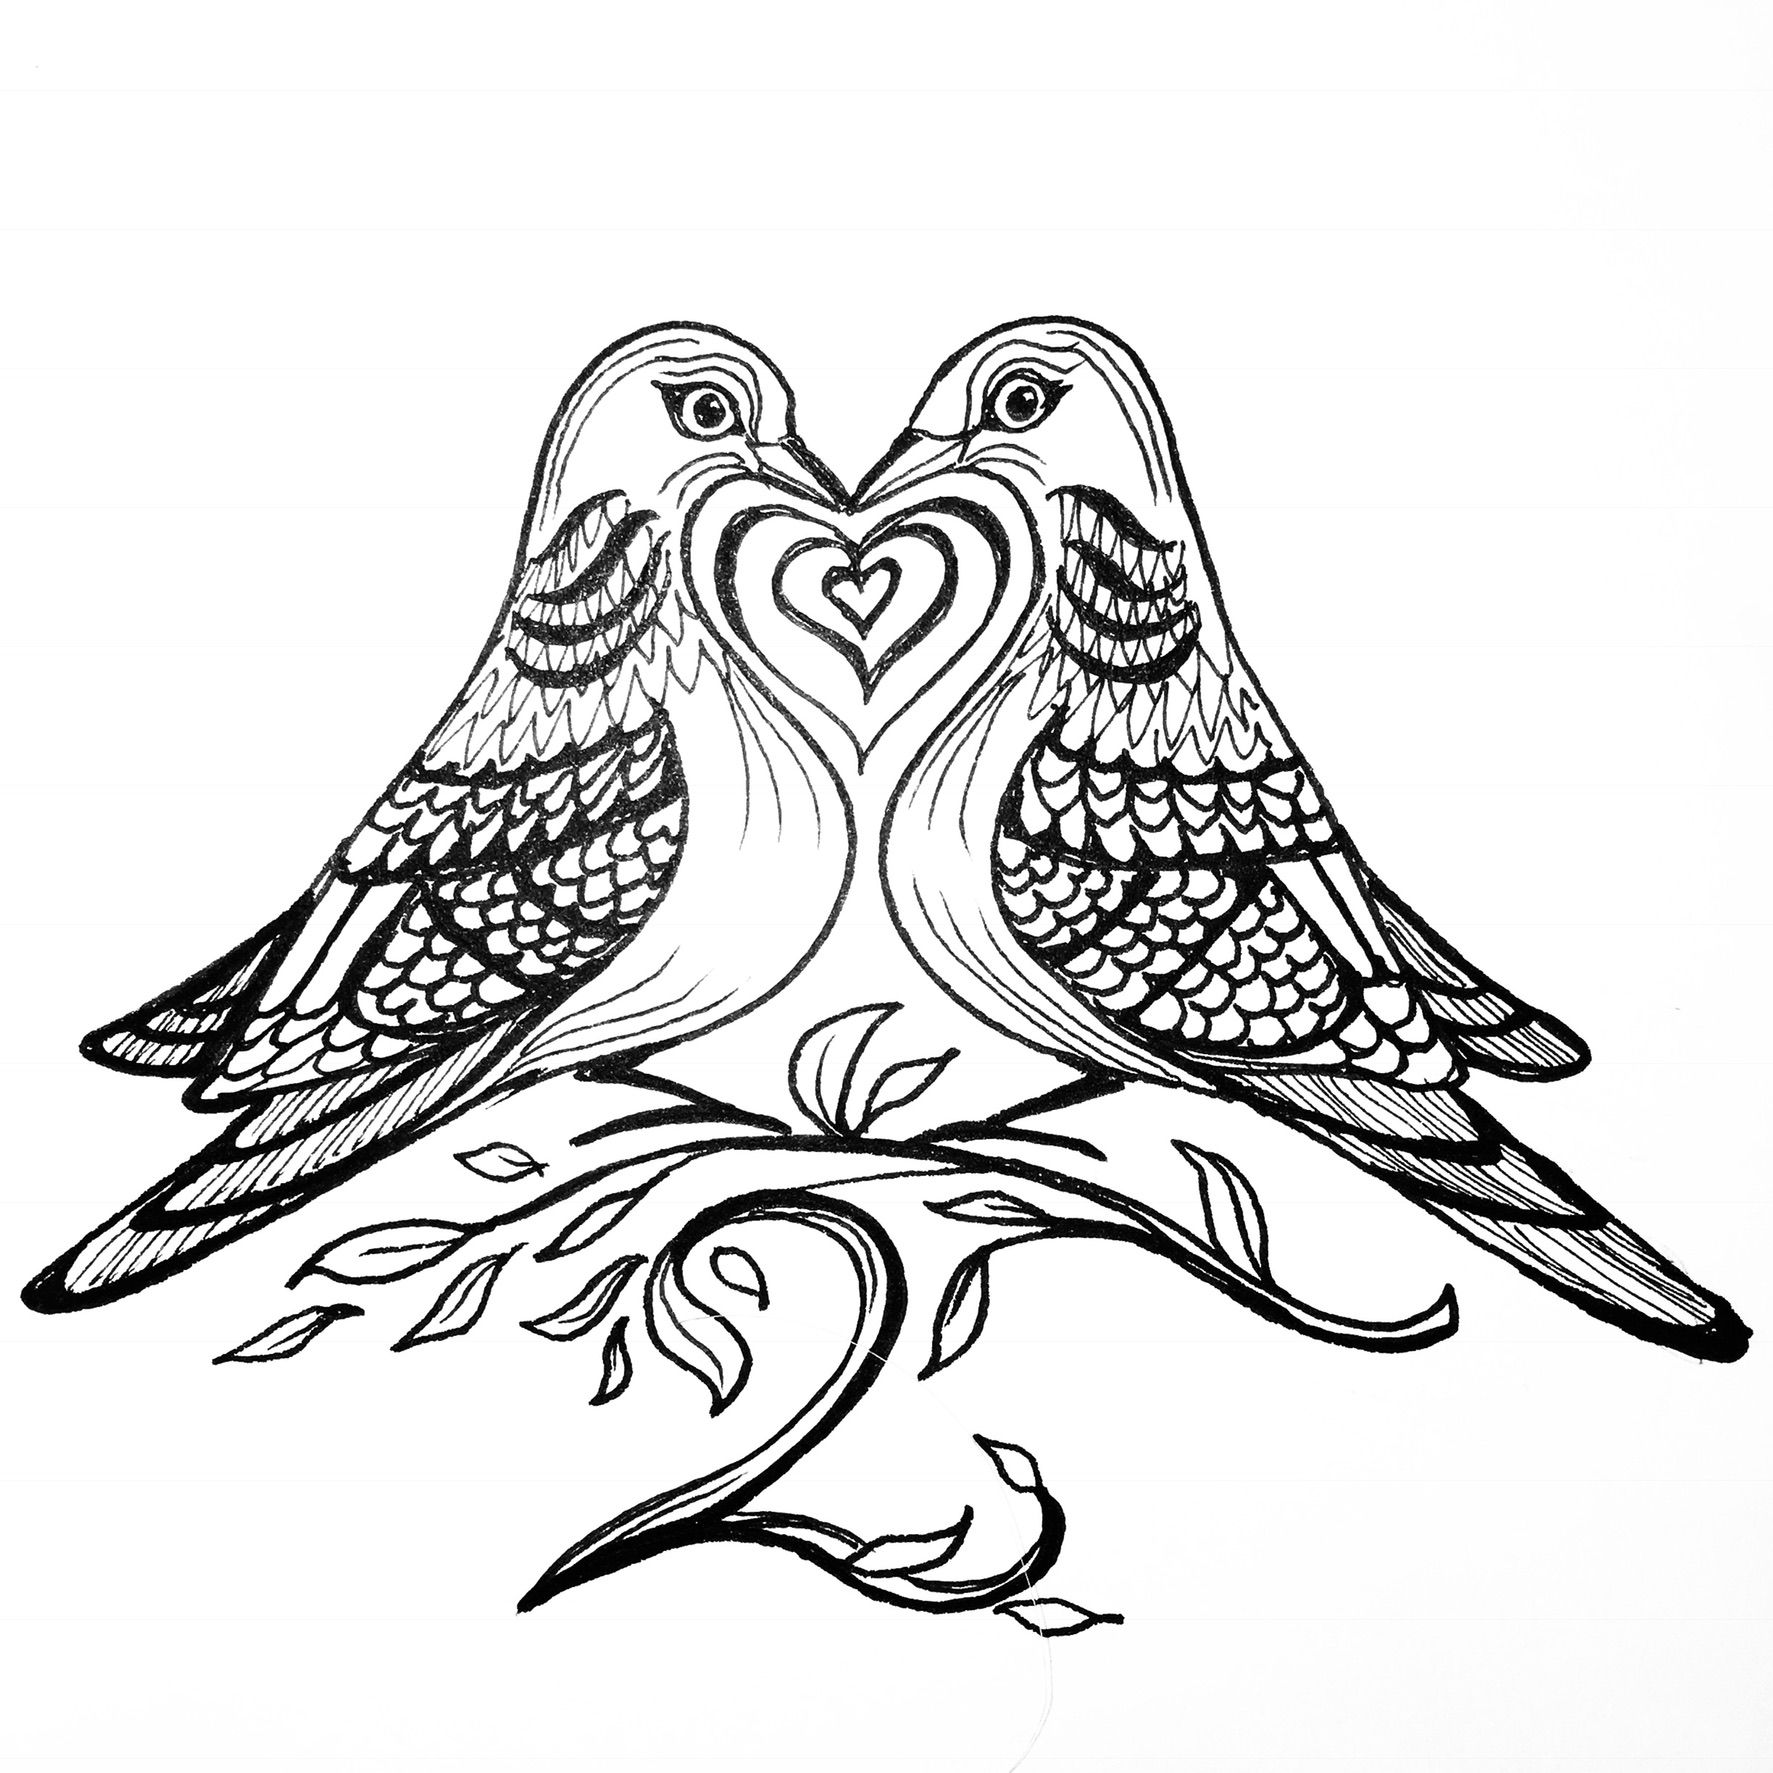 Two Turtle Doves Drawing